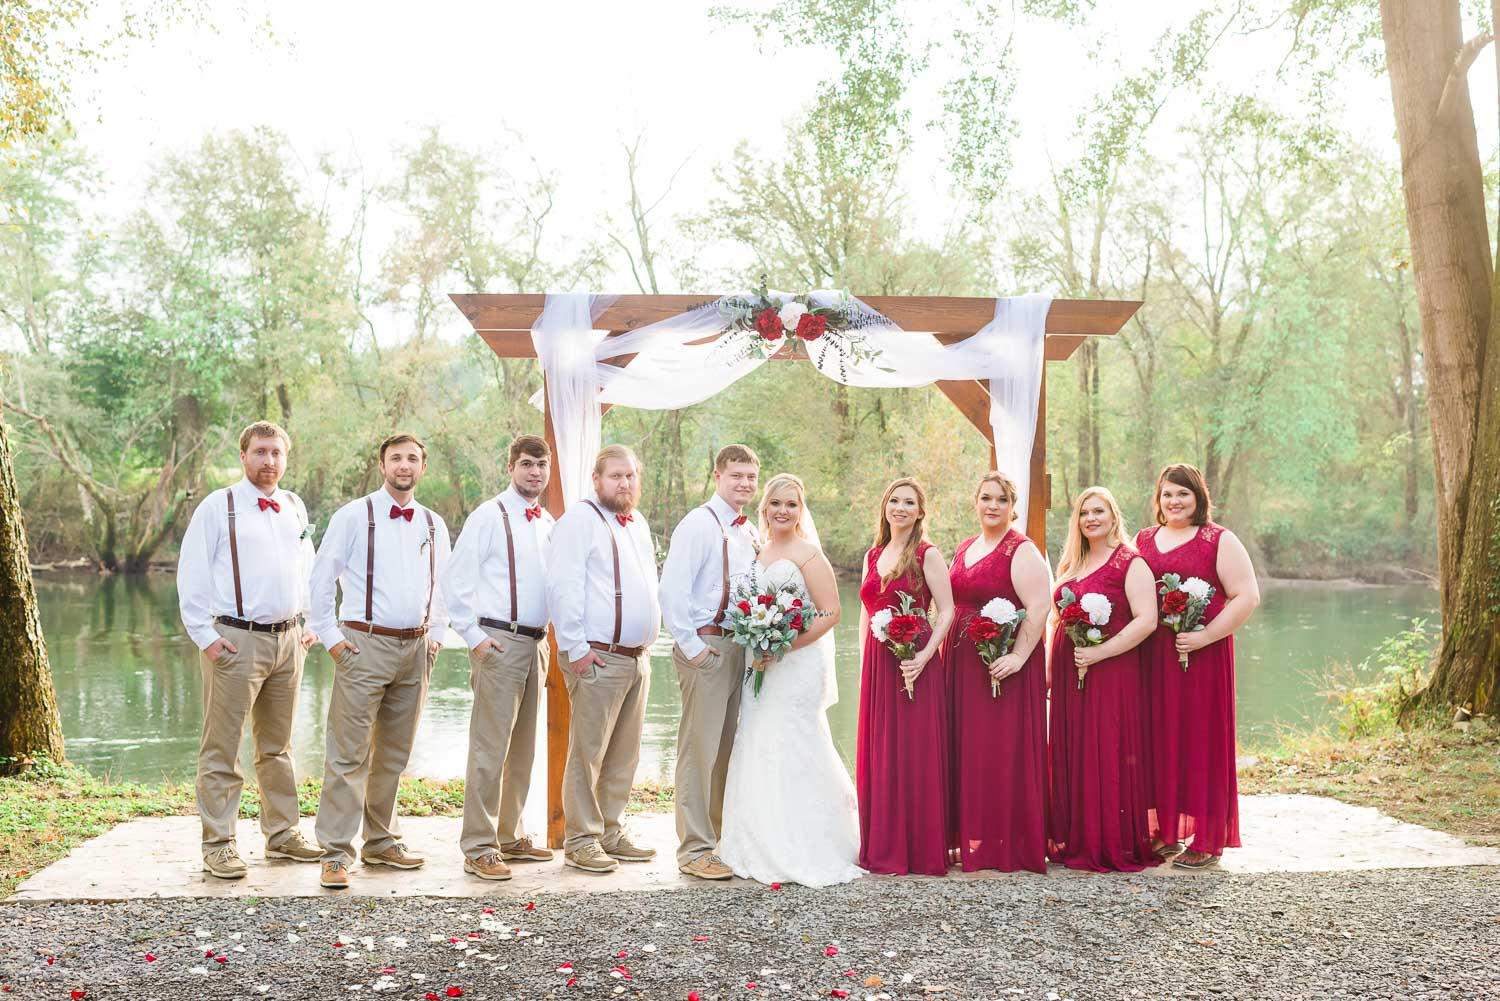 fall wedding with girls in bold cranberry red dresses and guys in tan and white